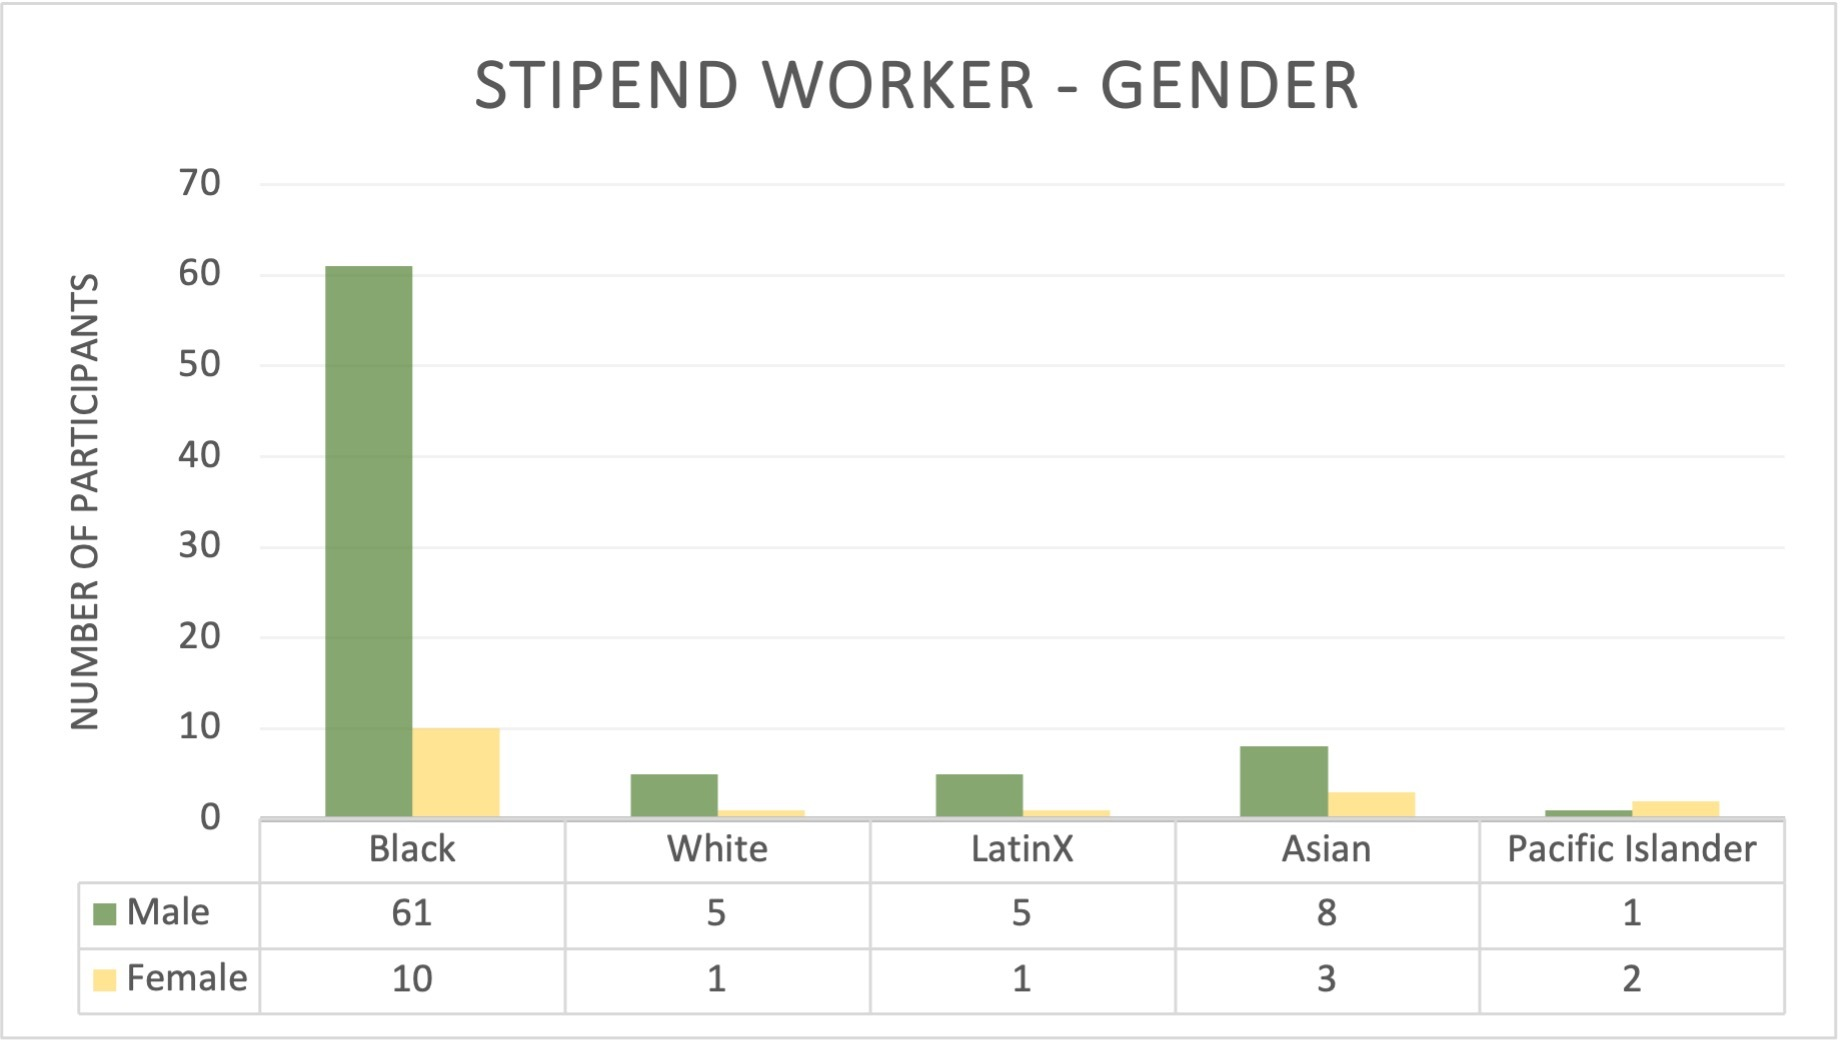 A bar graph and table showing the number of stipend workers by race and gender.